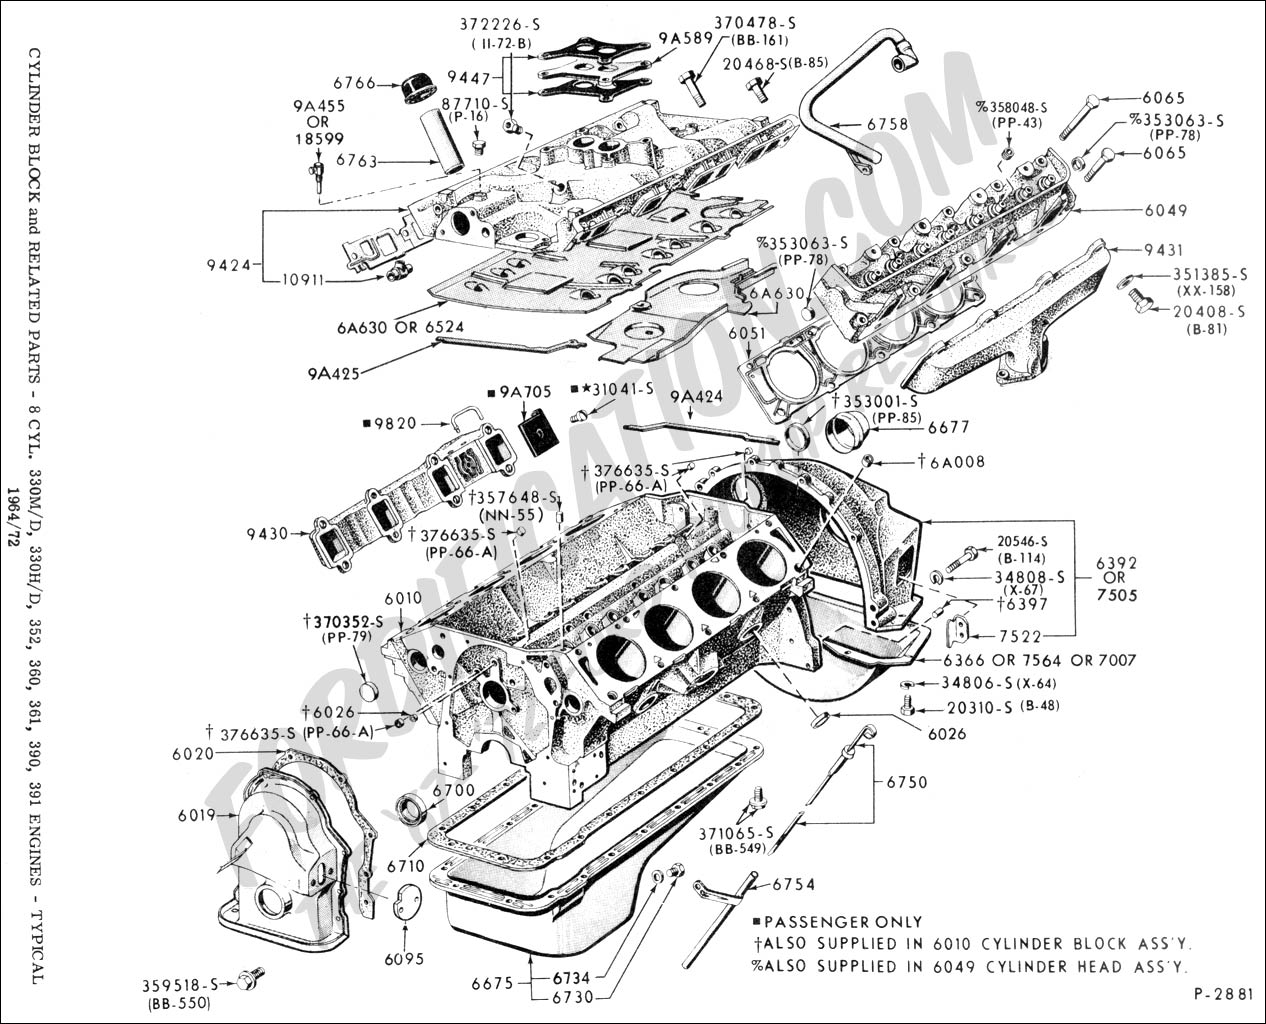 engine schematics wiring diagram rh 44 lottehaakt nl pc engine schematics stirling engine schematics